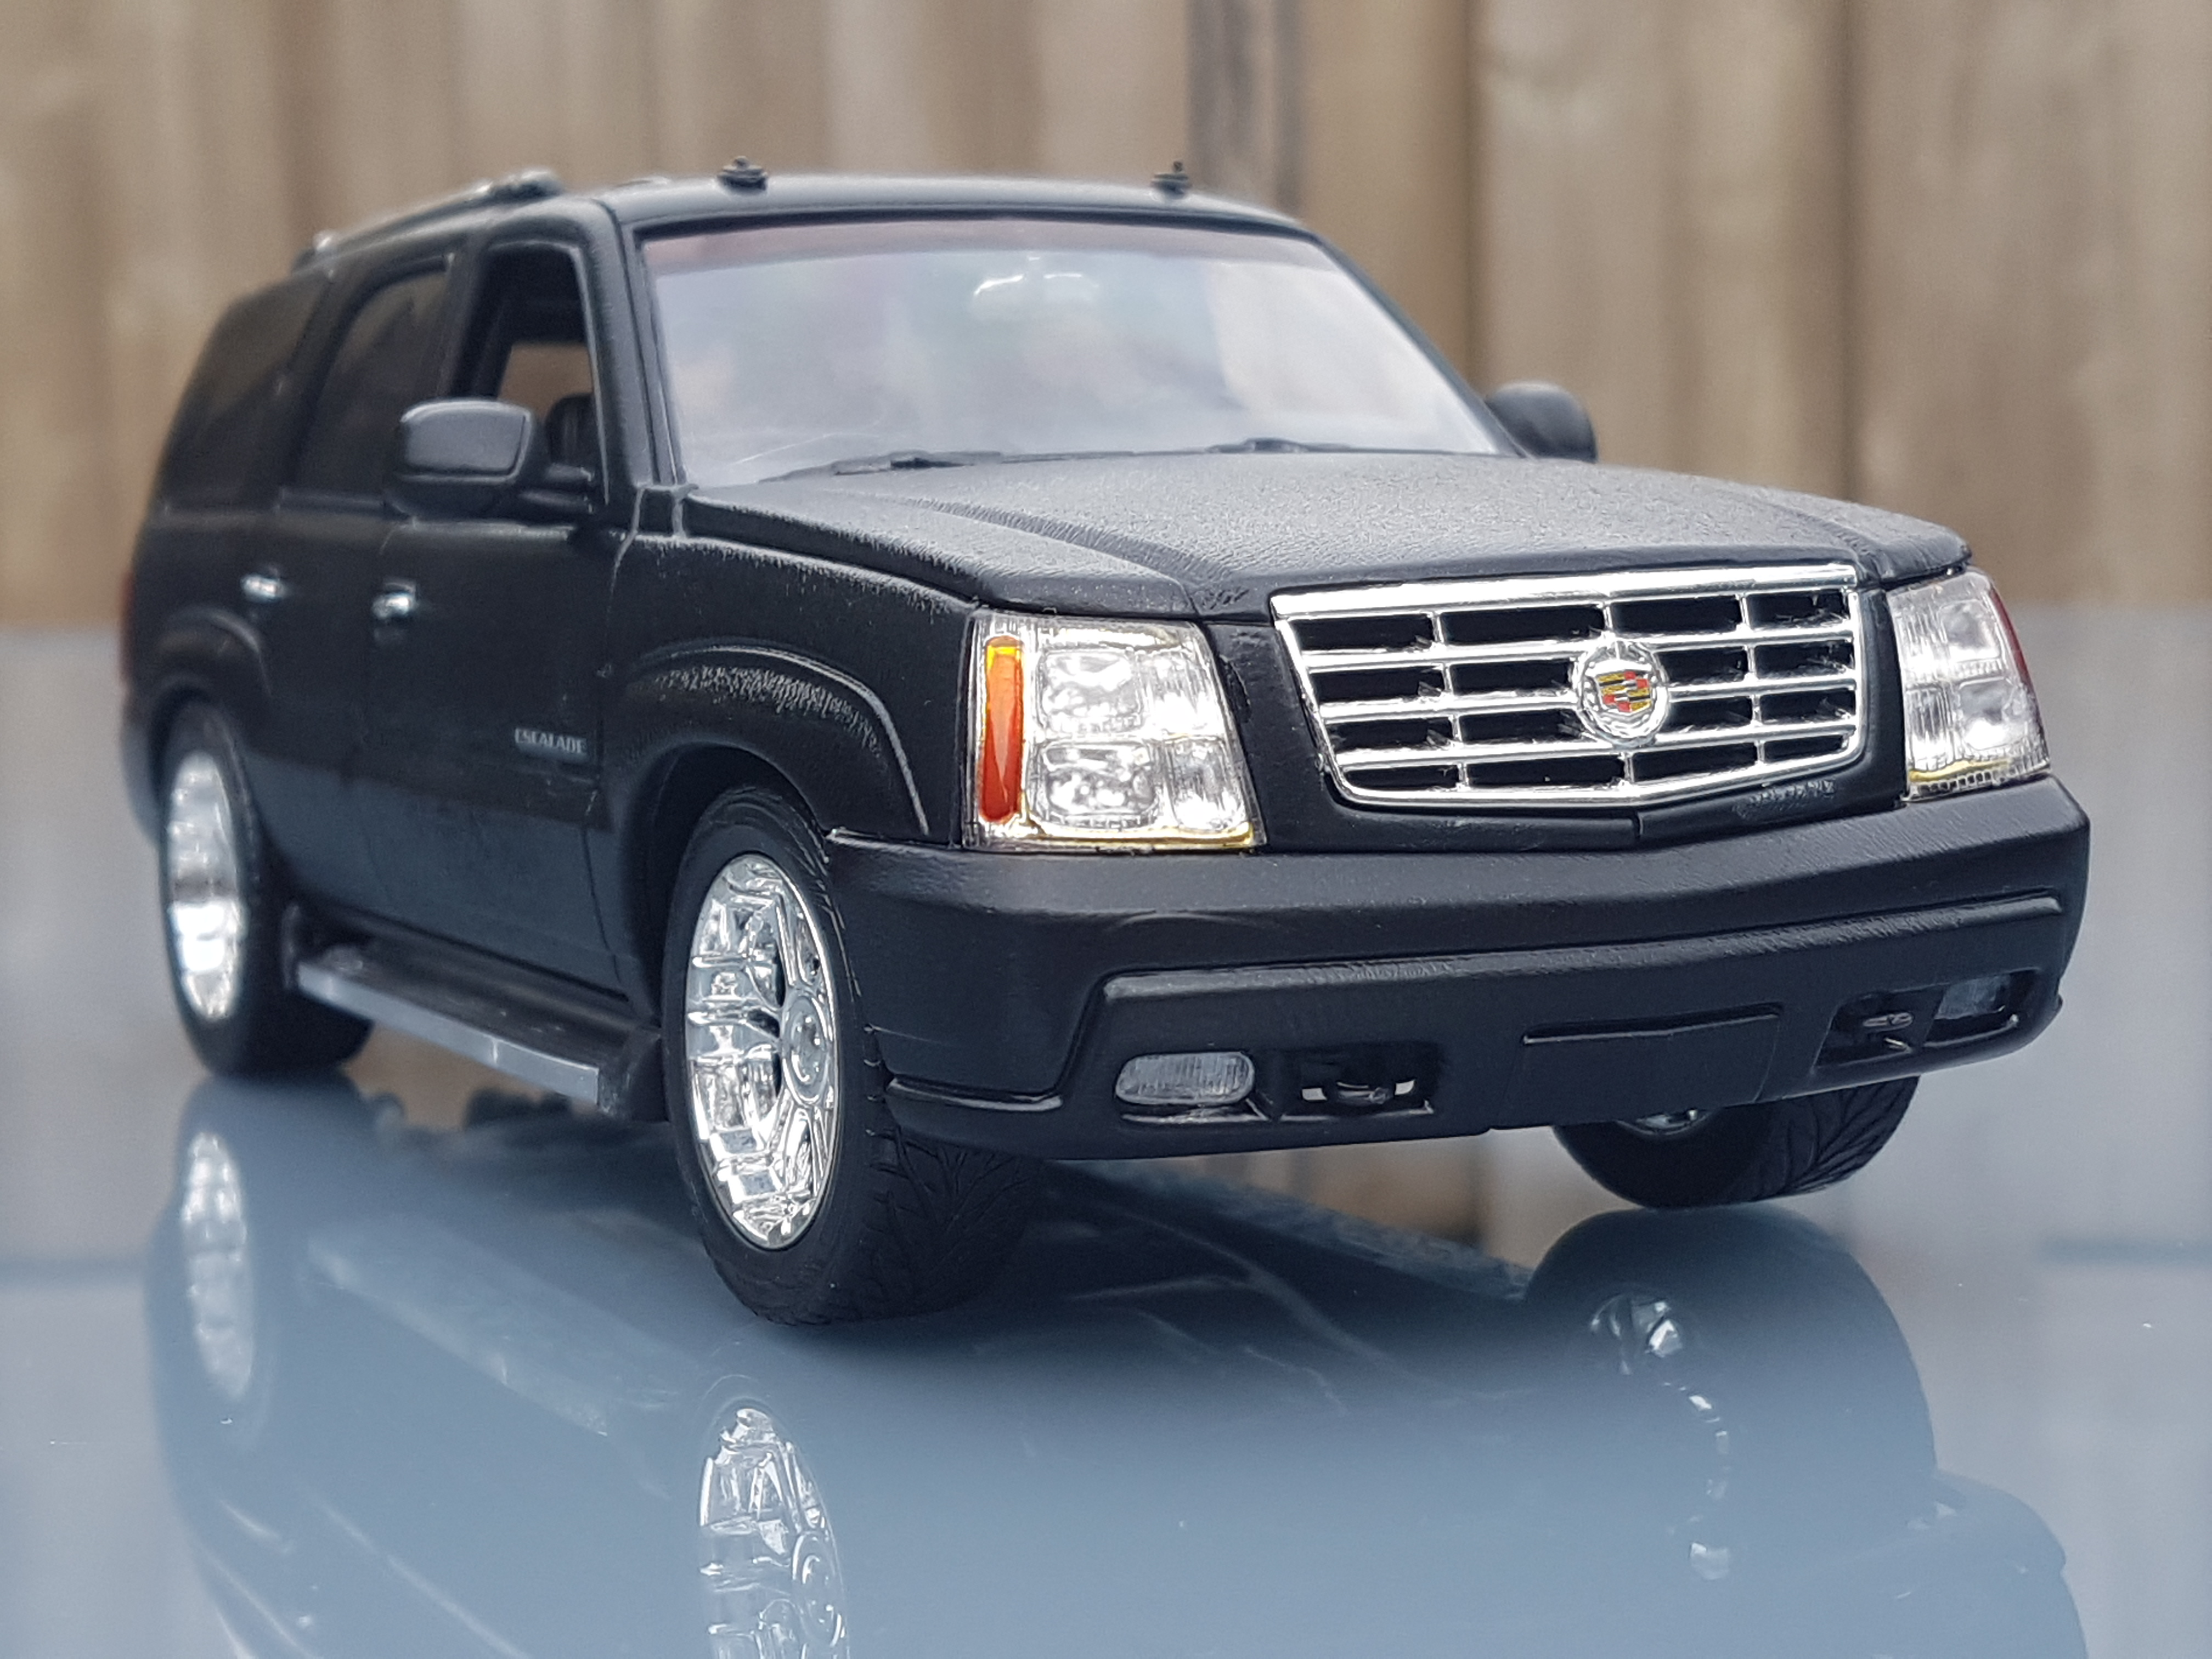 doors escalade lpg in hatchback cadillac auto sale for lymington hampshire used car with